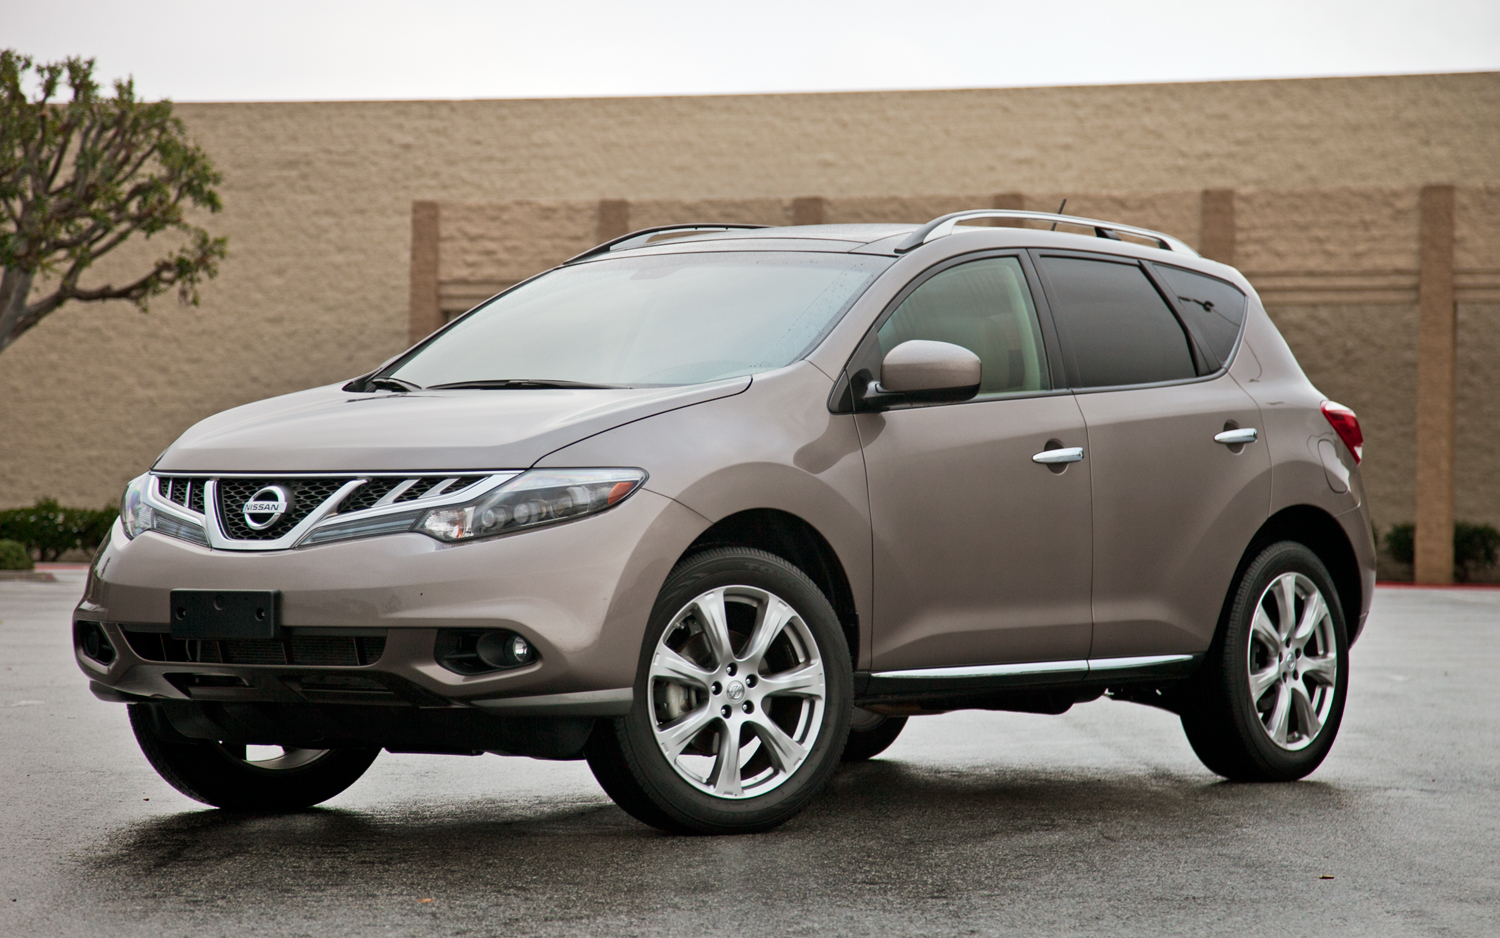 Pictures of nissan murano #9